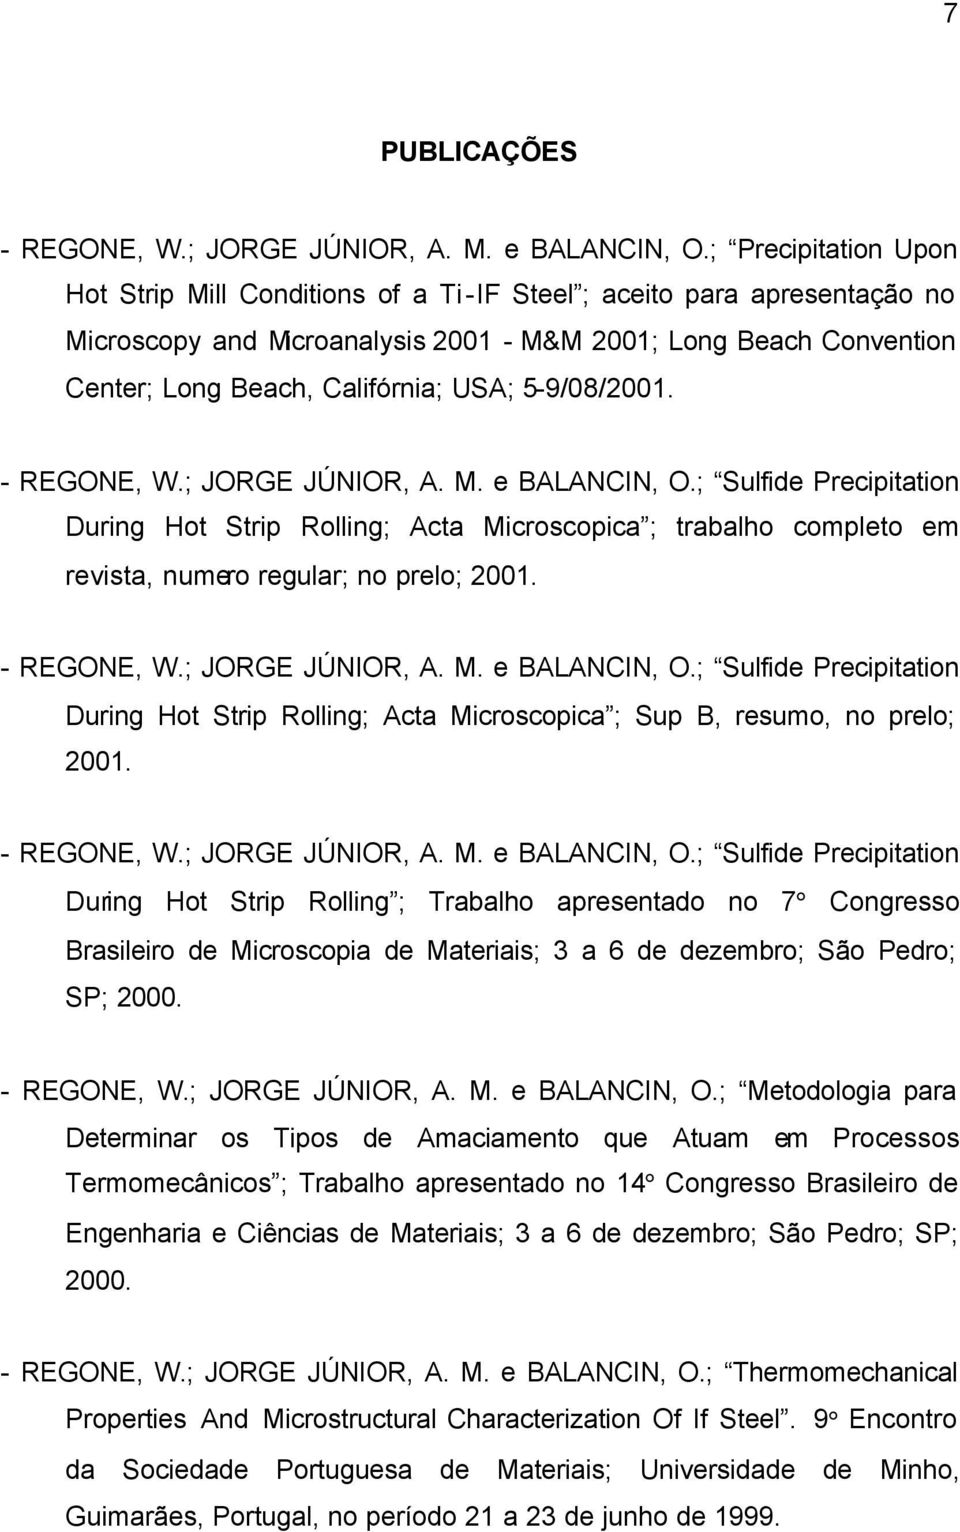 5-9/8/21. - REGONE, W.; JORGE JÚNIOR, A. M. e BALANCIN, O.; Sulfide Precipitation During Hot Strip Rolling; Acta Microscopica ; trabalho completo em revista, numero regular; no prelo; 21. - REGONE, W.; JORGE JÚNIOR, A. M. e BALANCIN, O.; Sulfide Precipitation During Hot Strip Rolling; Acta Microscopica ; Sup B, resumo, no prelo; 21.